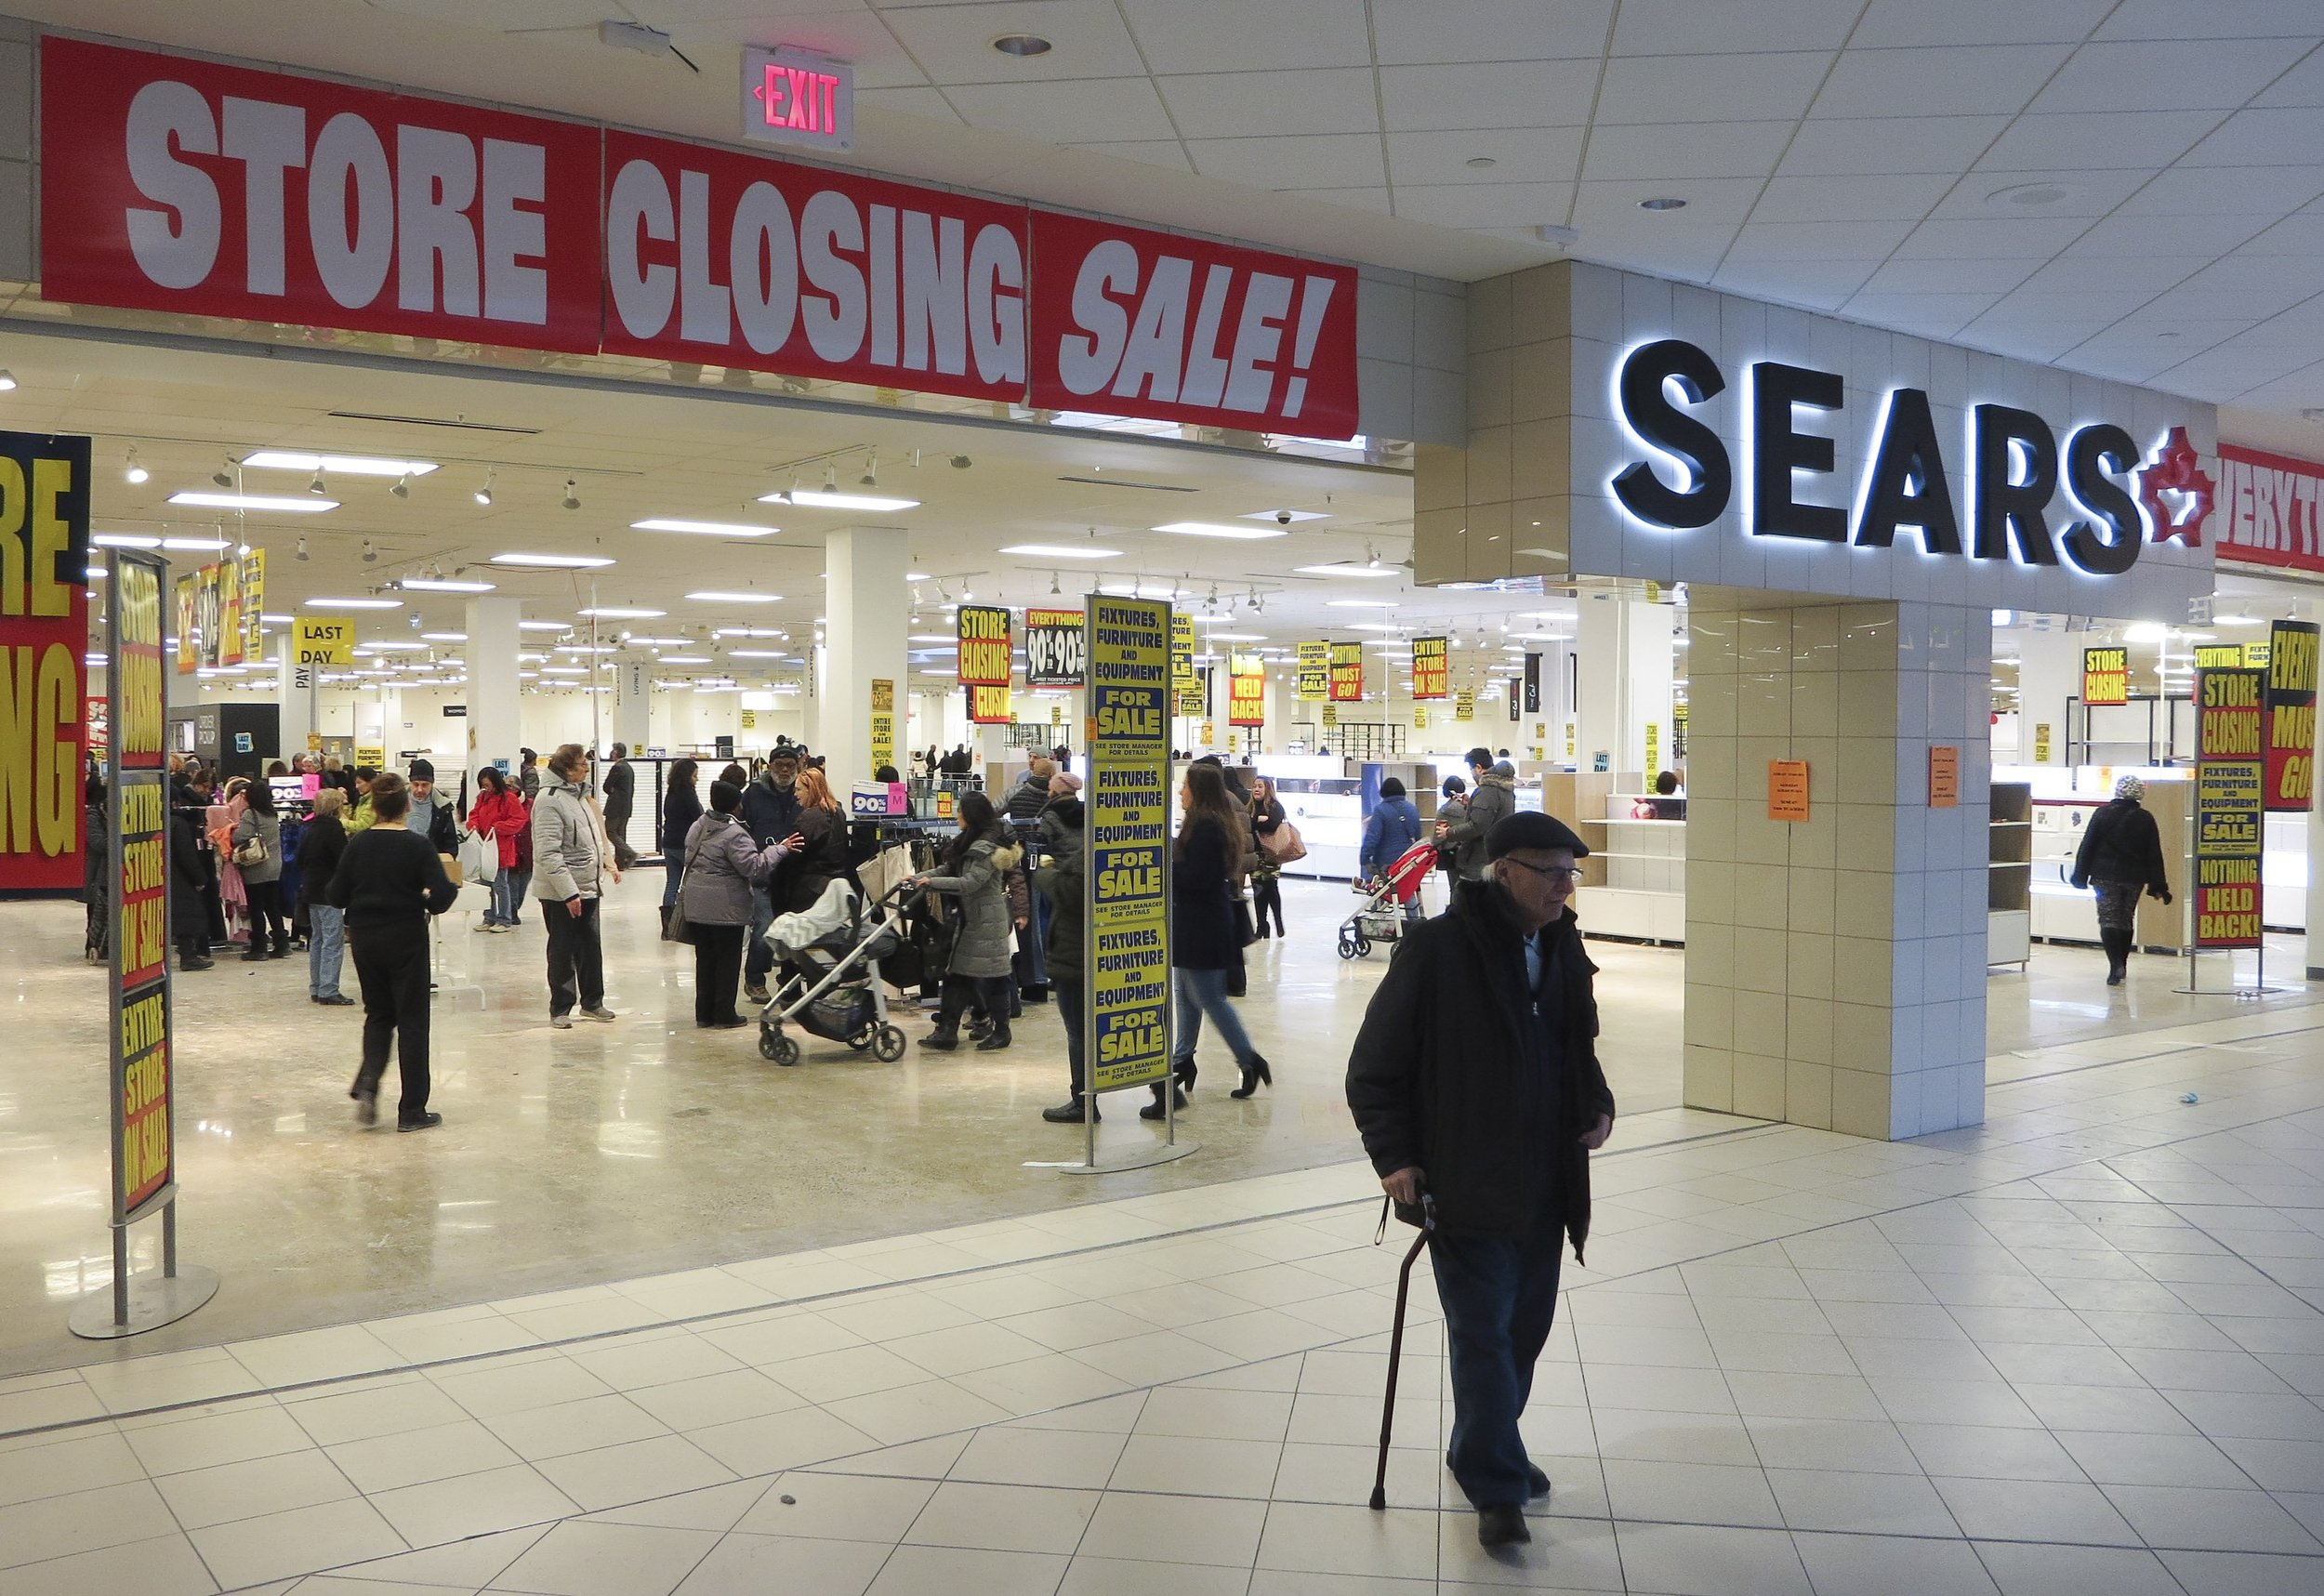 Sears' clearance sales will likely be full of steep discounts, but one key uncertainty could keep shoppers from biting